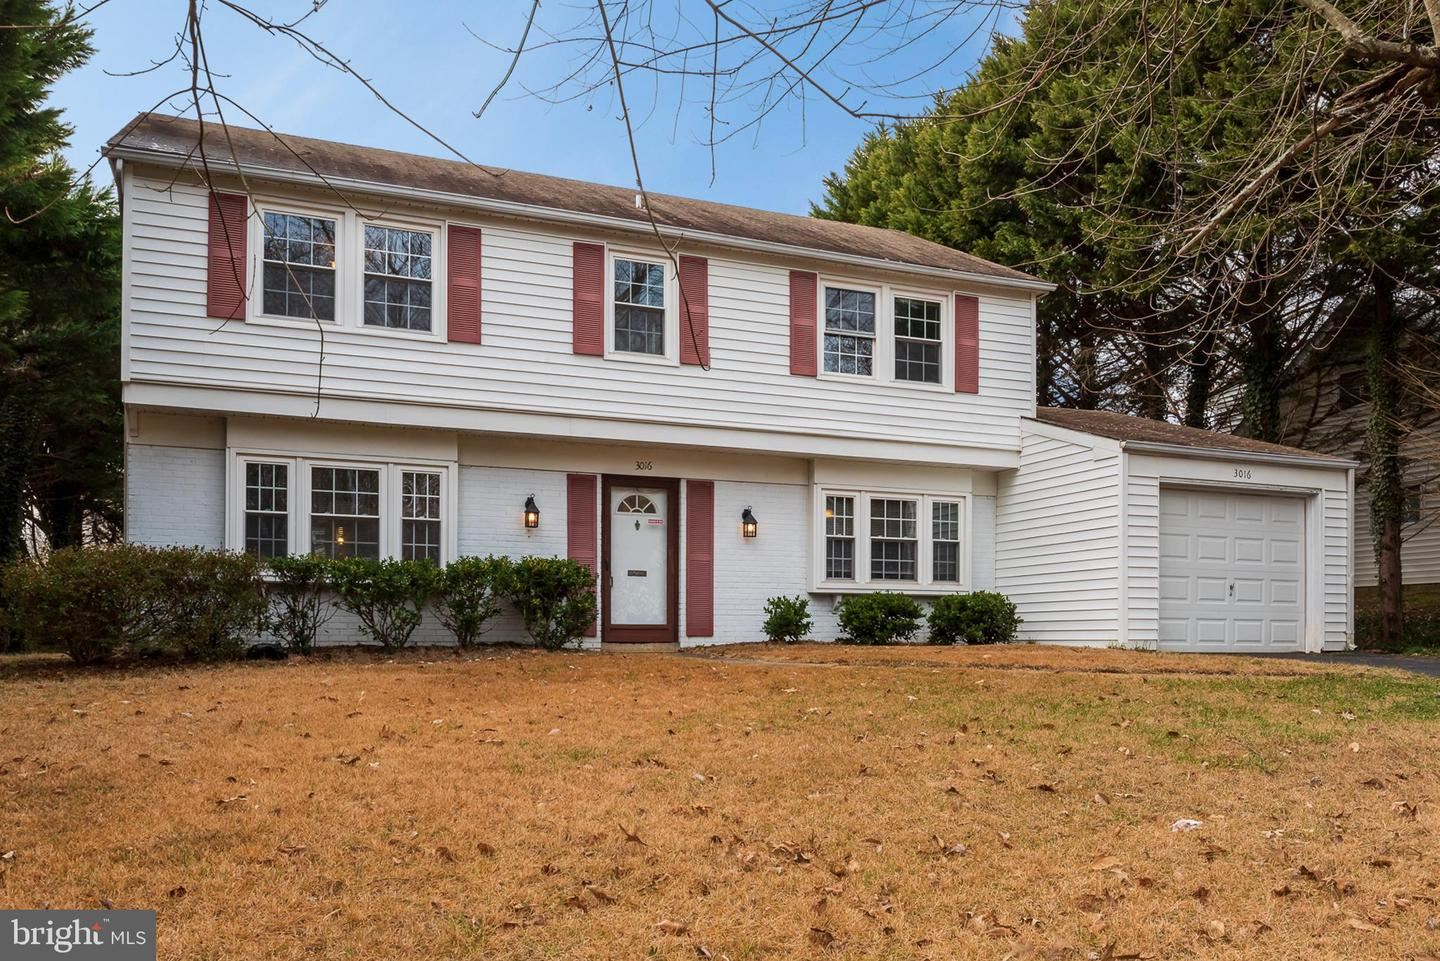 3016 STONYBROOK DR, Bowie, MD 20715 - #: MDPG556026